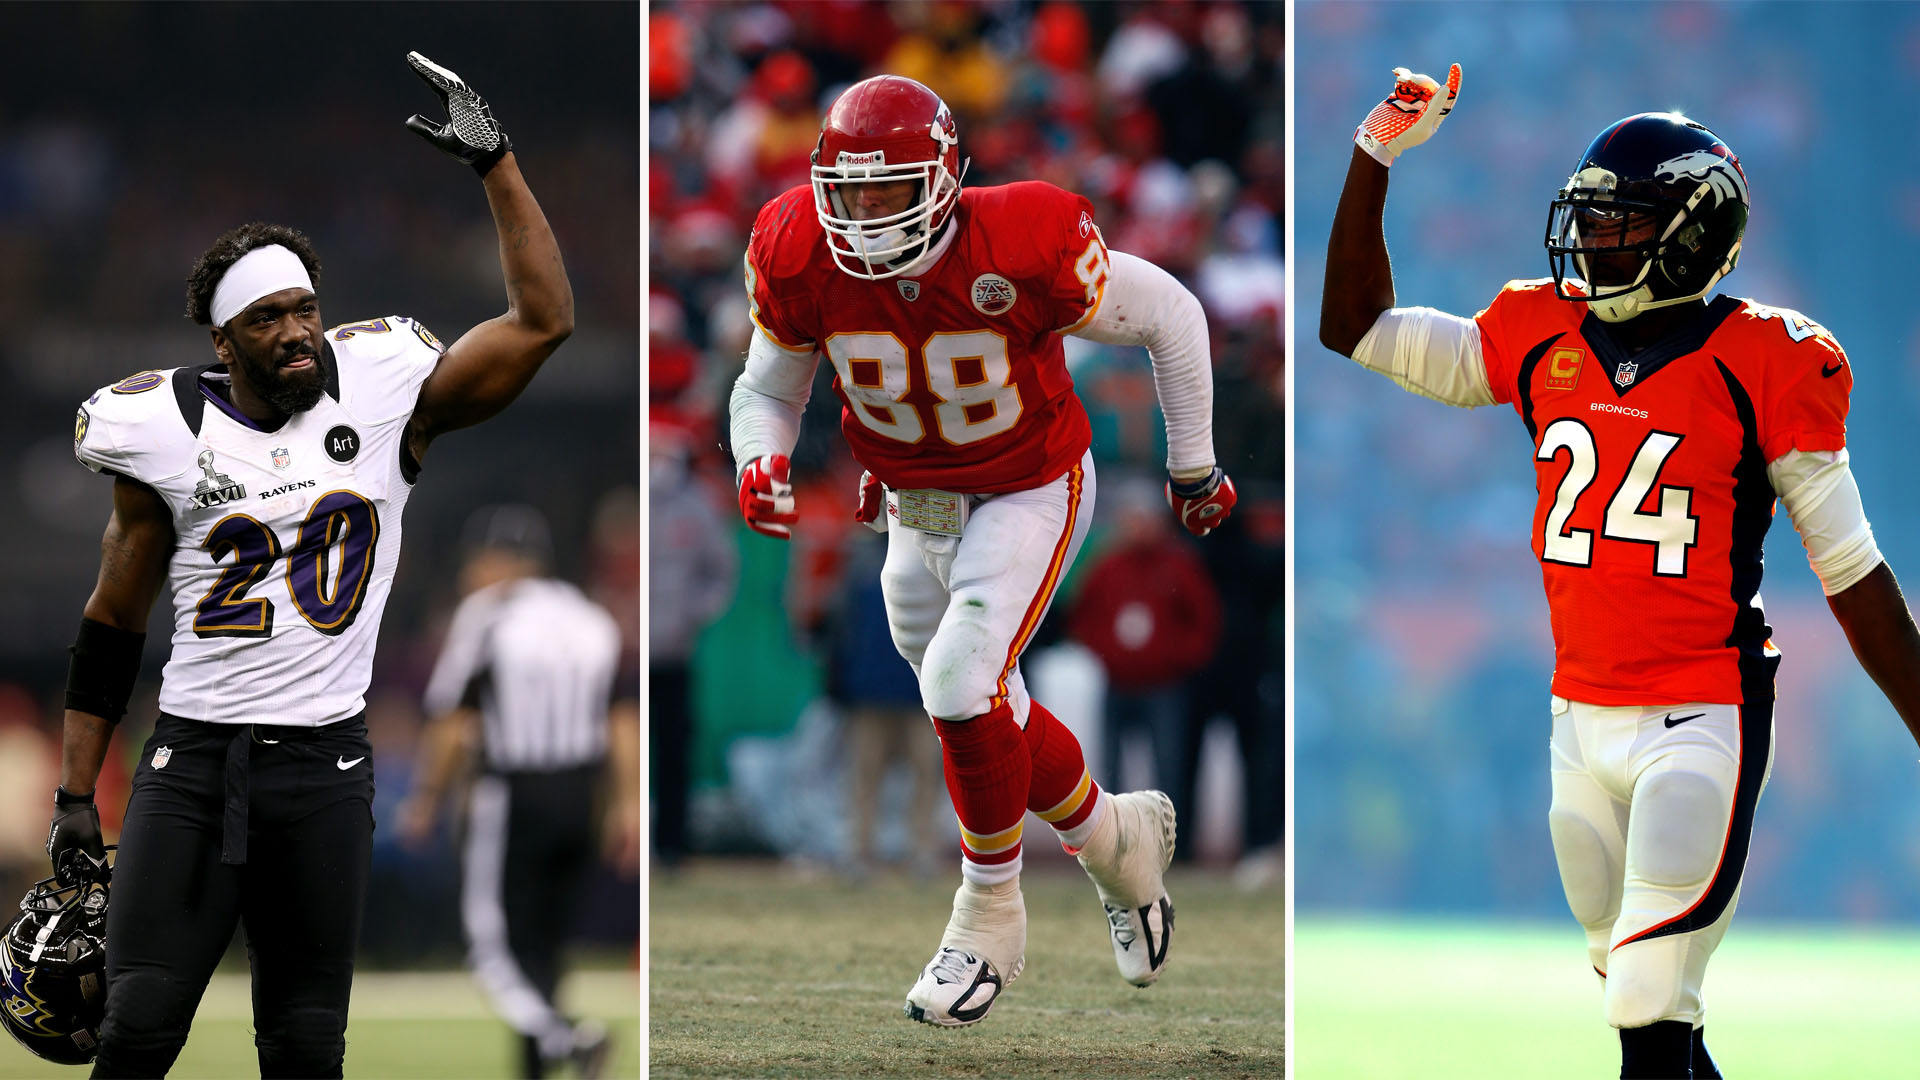 Ed Reed (left), Tony Gonzalez (middle) and Champ Bailey